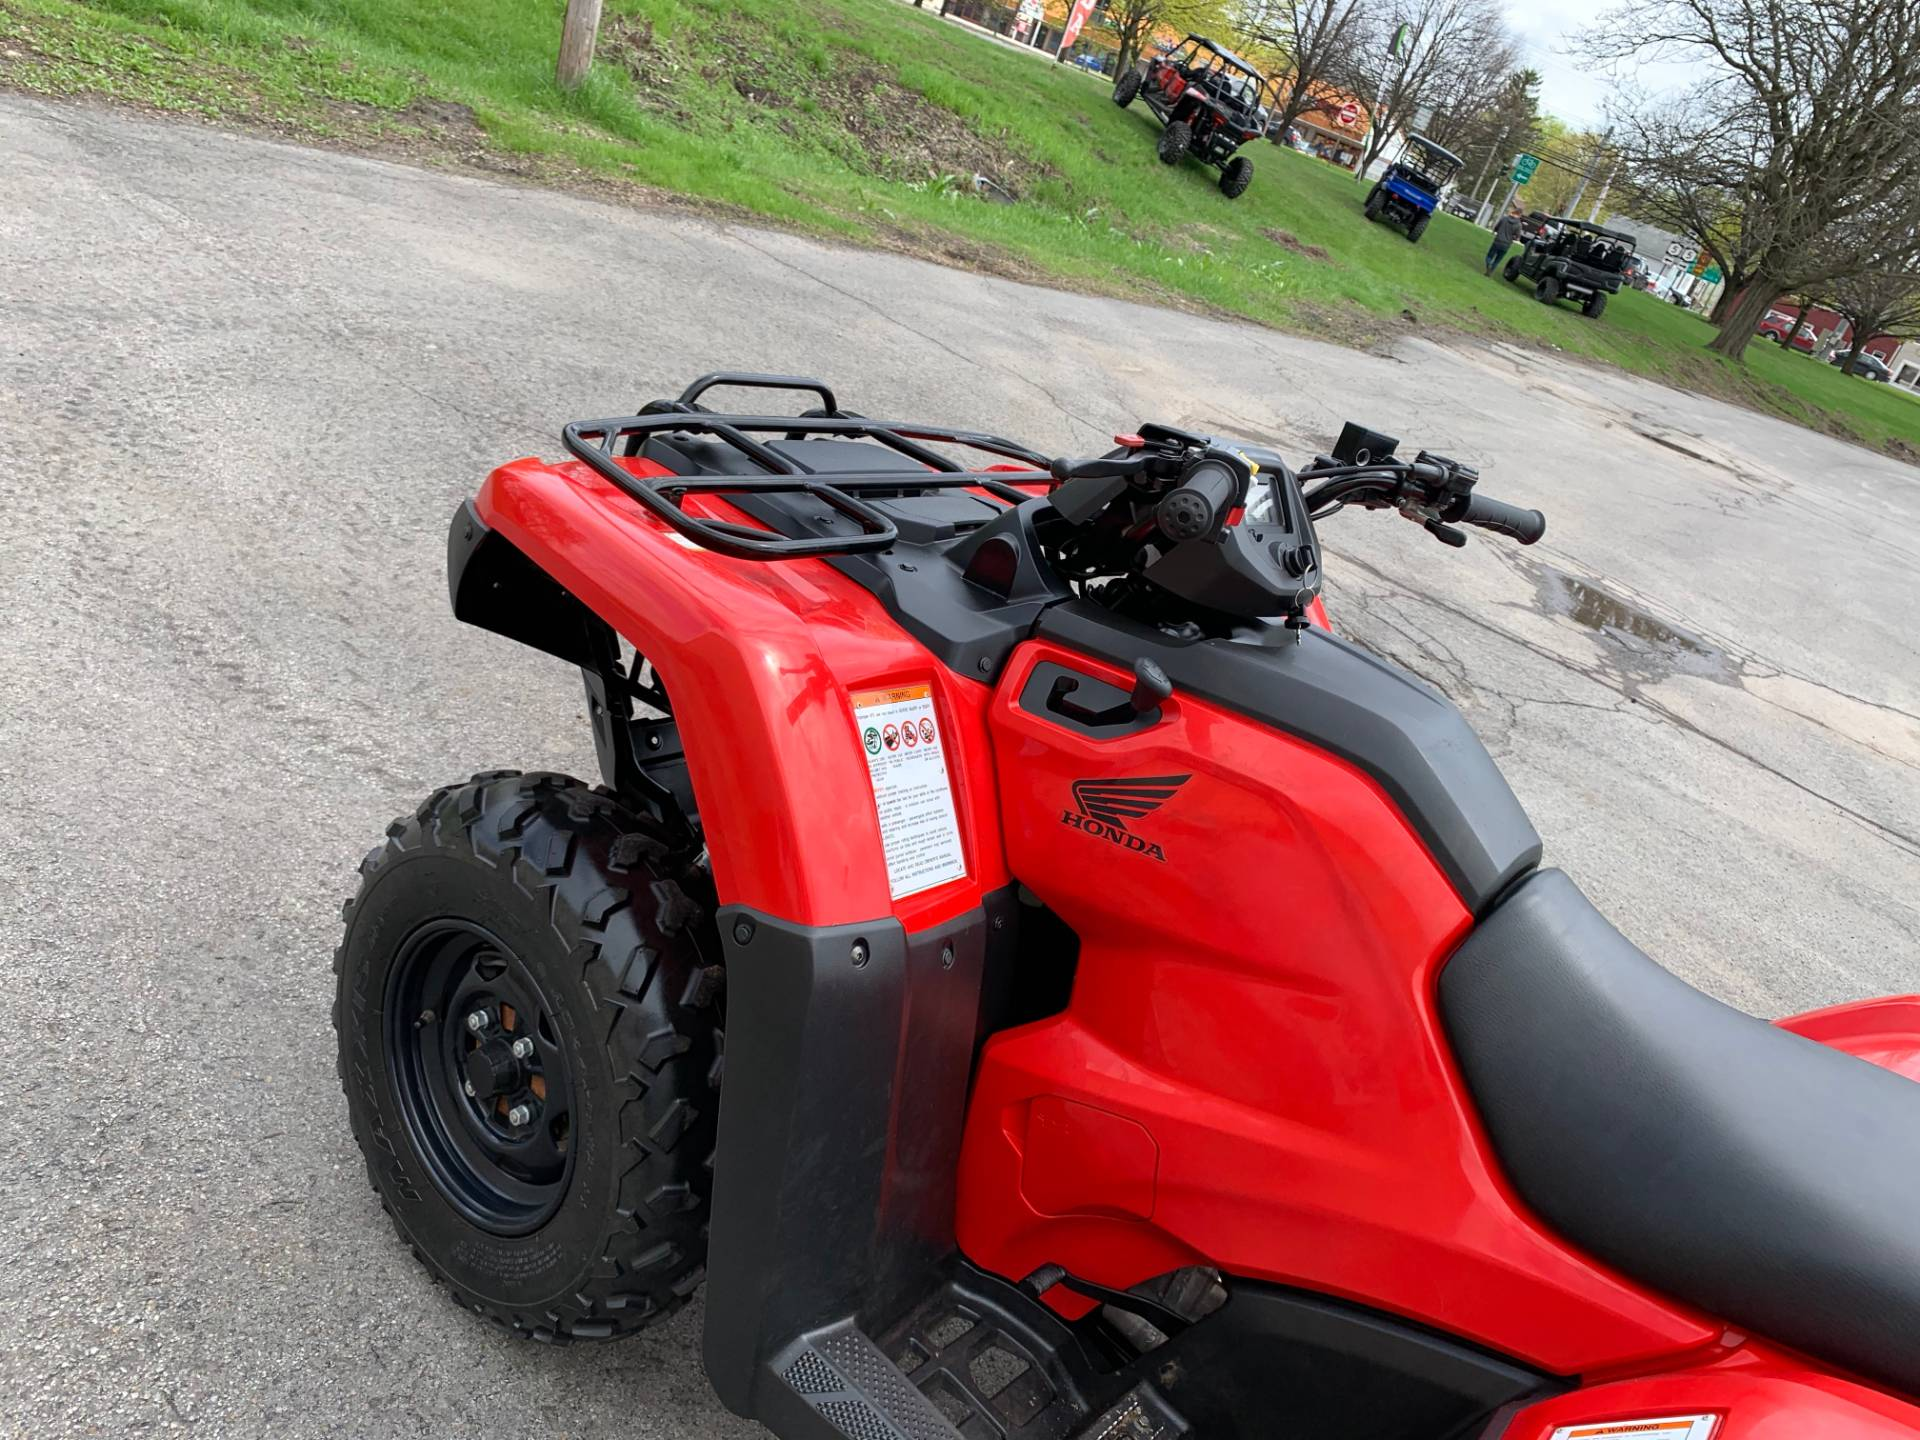 2018 Honda FourTrax Rancher 4x4 in Herkimer, New York - Photo 14